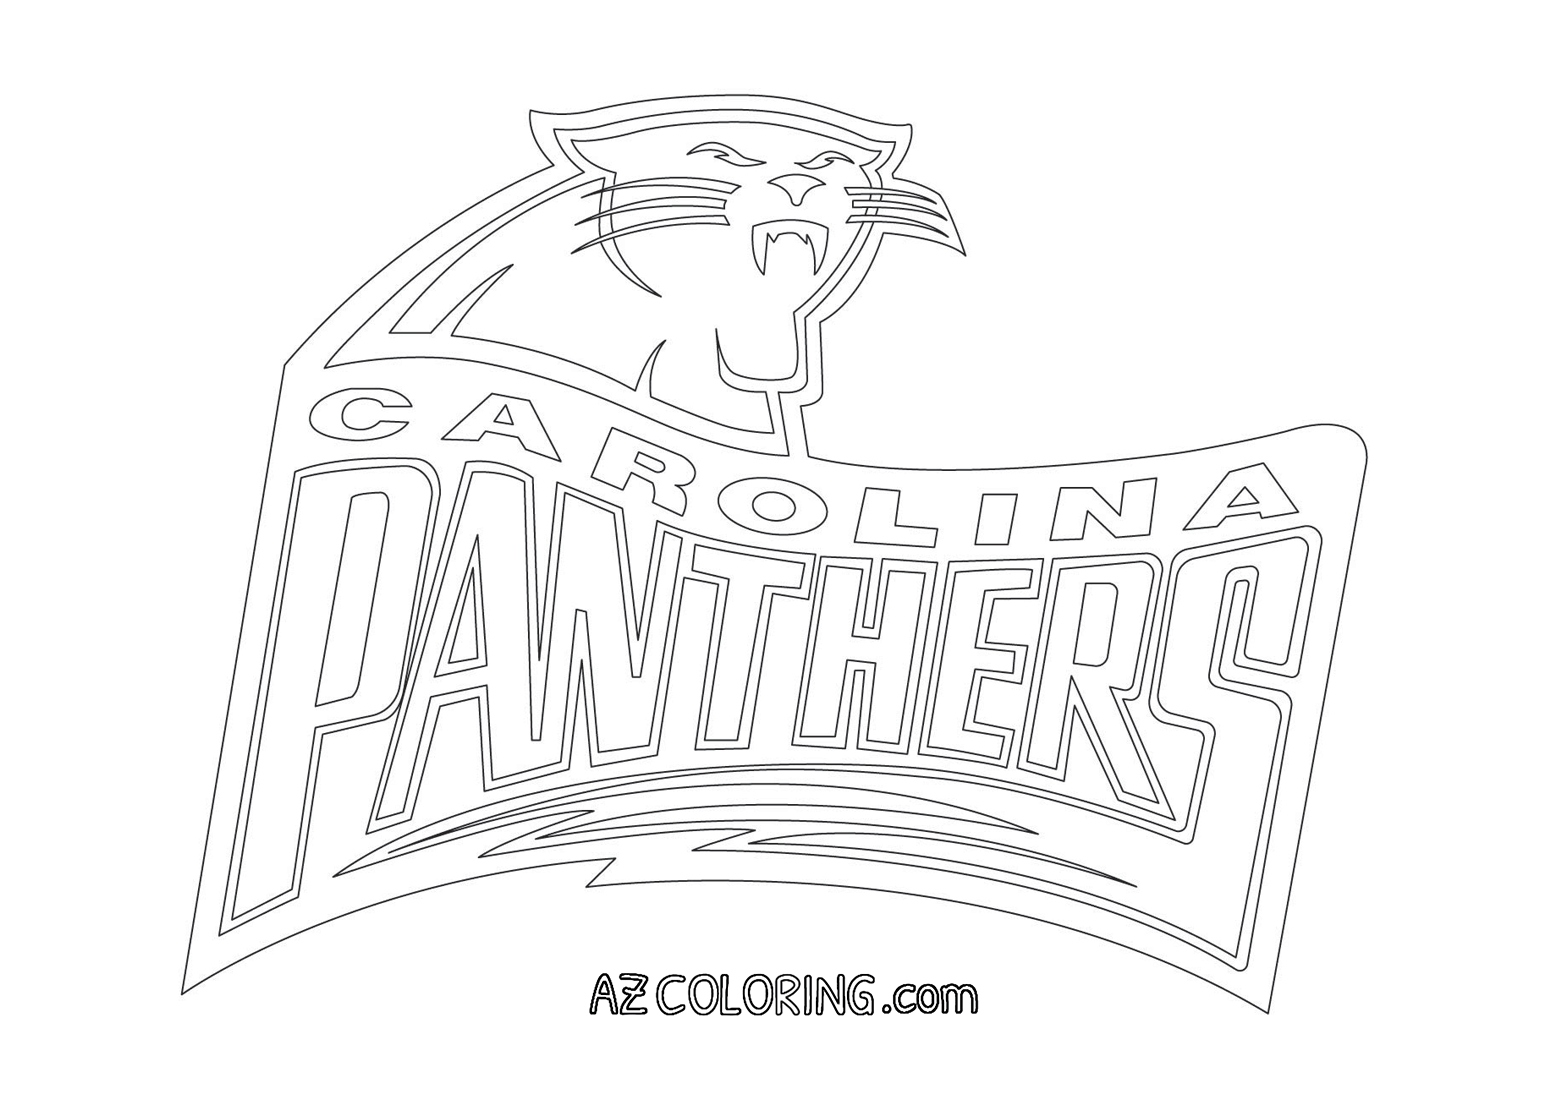 1547x1101 Carolina Panthers Coloring Pages Luxury Football And Rugby